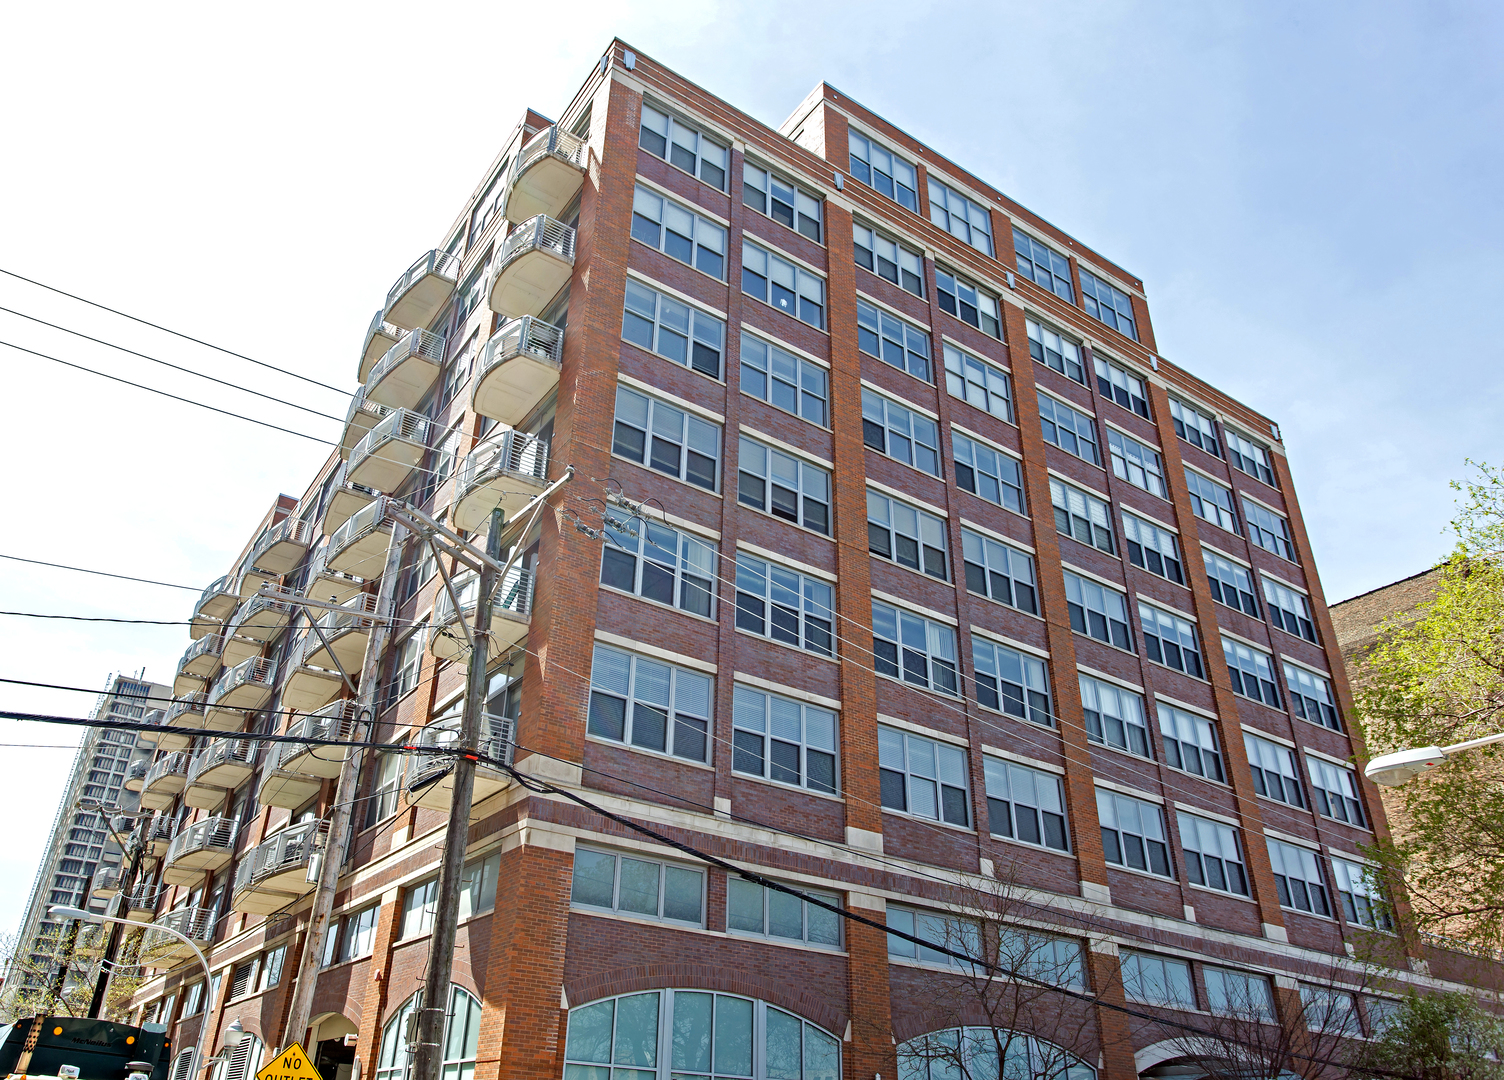 933 Van Buren Unit Unit 521 ,Chicago, Illinois 60607